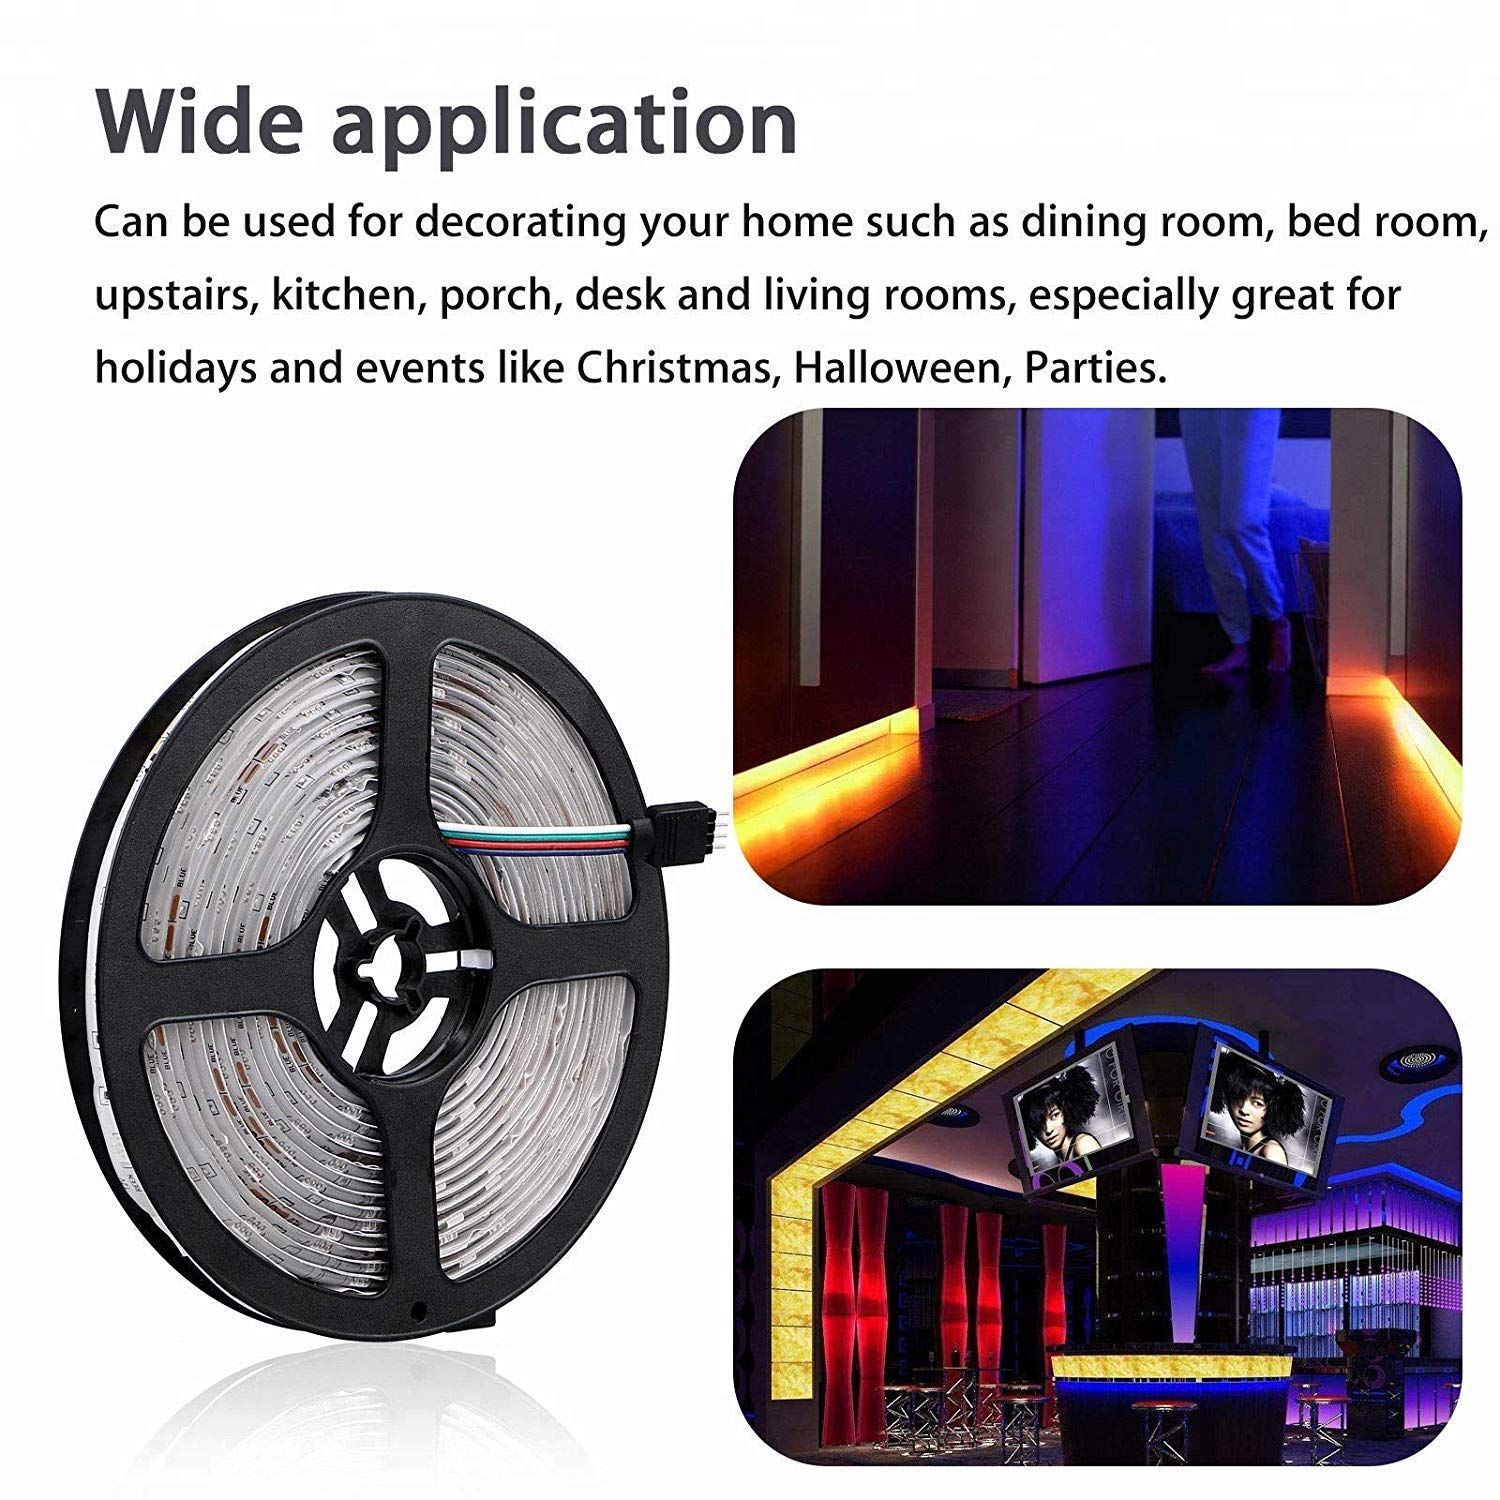 WheeFi LED Strip Lights WiFi Wireless Smart Phone Controlled Strip Light Kit 16.4ft 300LEDs 5050 Color Changing LED Waterproof IP65 Alexa Google Home Android/iOS Compatible